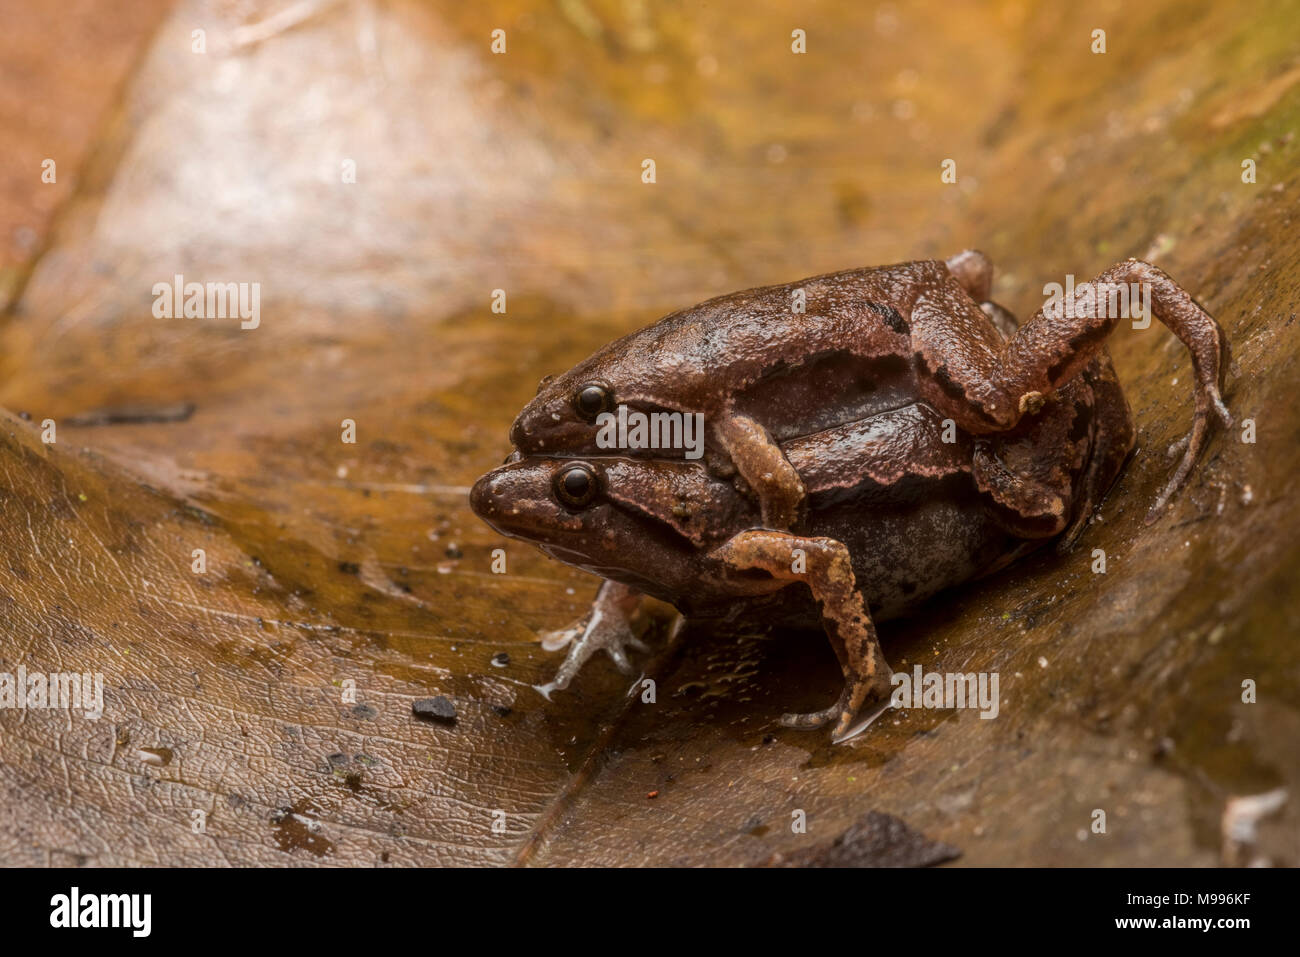 A pair of bolivian bleating frogs (Hamptophryne boliviana) from Peru, these small microhylids can be found breeding after heavy rains. - Stock Image